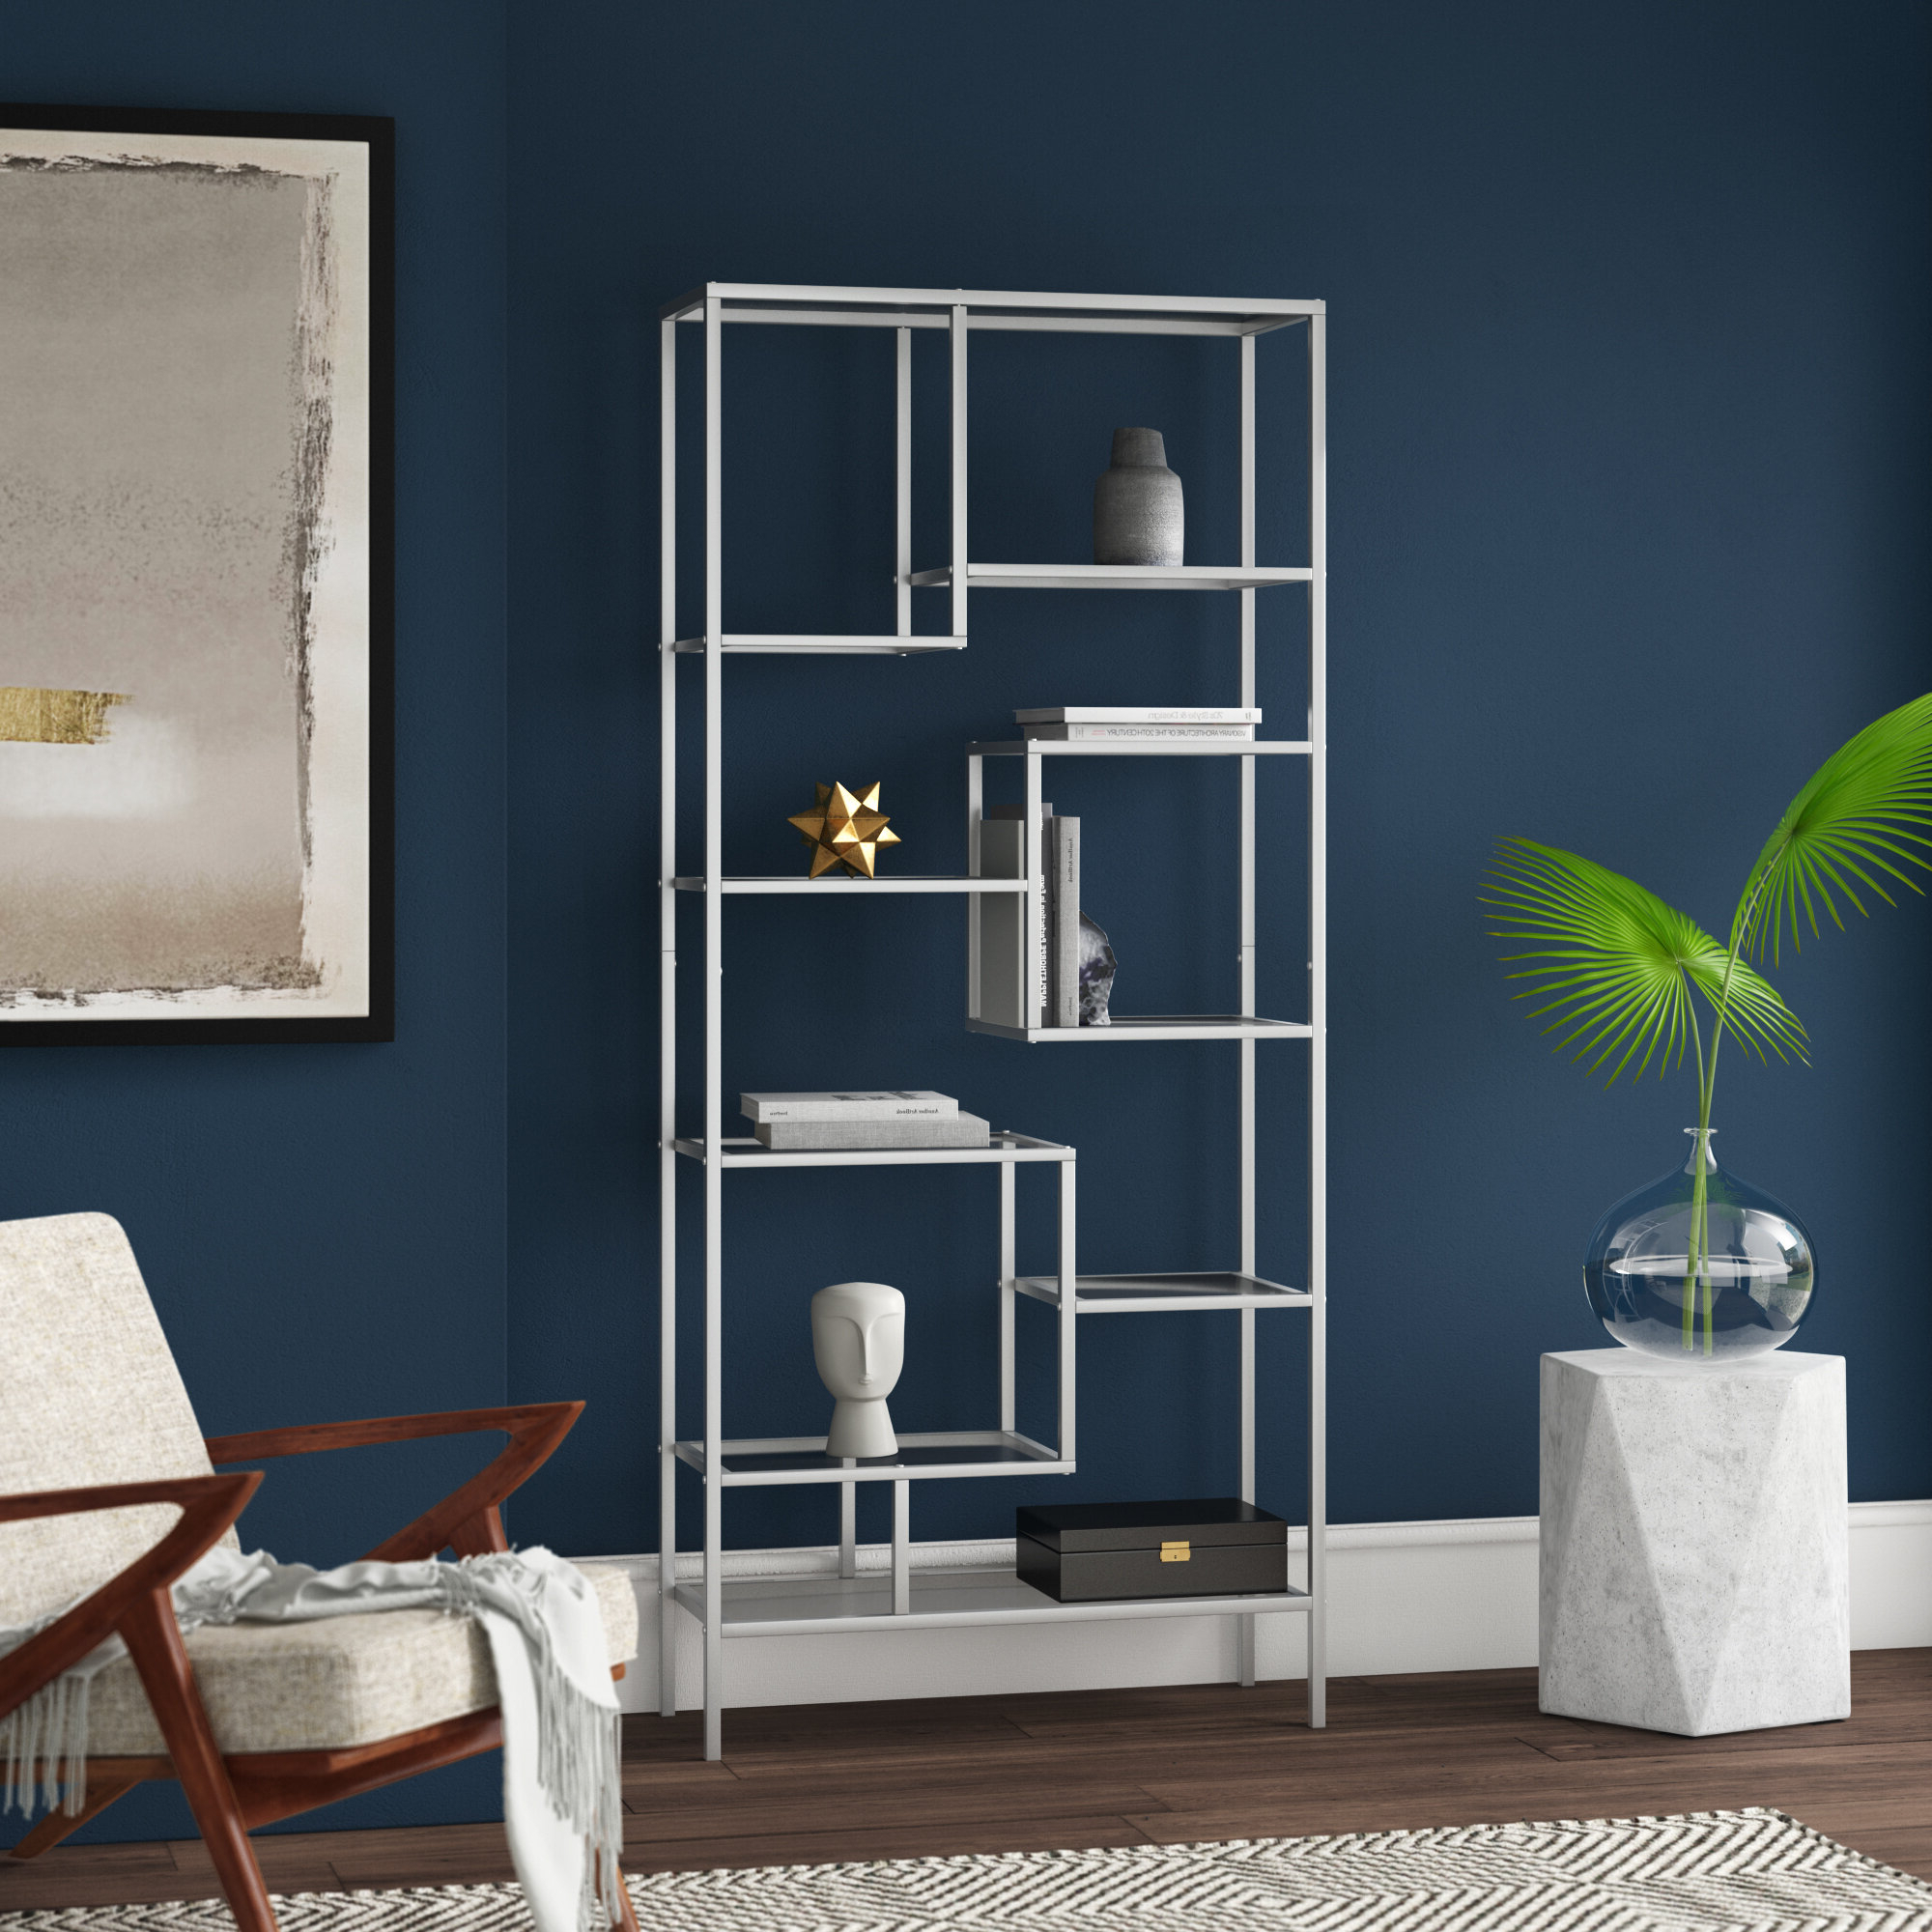 Blairs Etagere Bookcases Pertaining To Current Coss Etagere Bookcase & Reviews (Gallery 13 of 20)